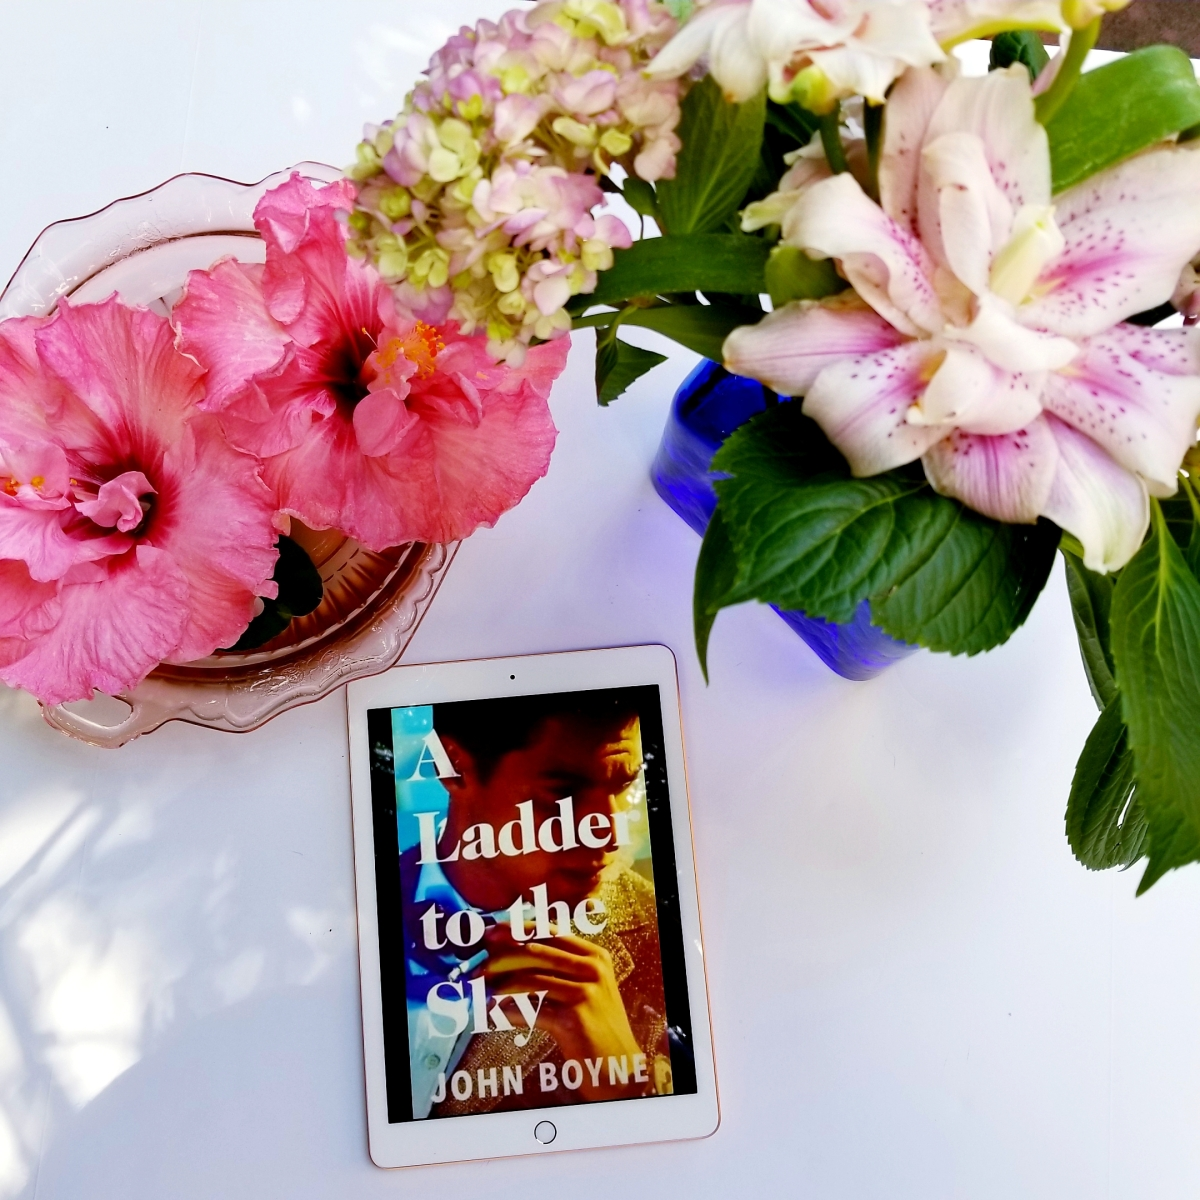 A Ladder to the Sky by John Boyne #bookreview #tarheelreader #thrladder @john_boyne @crownpublishing @hogarthbooks #aladdertothesky